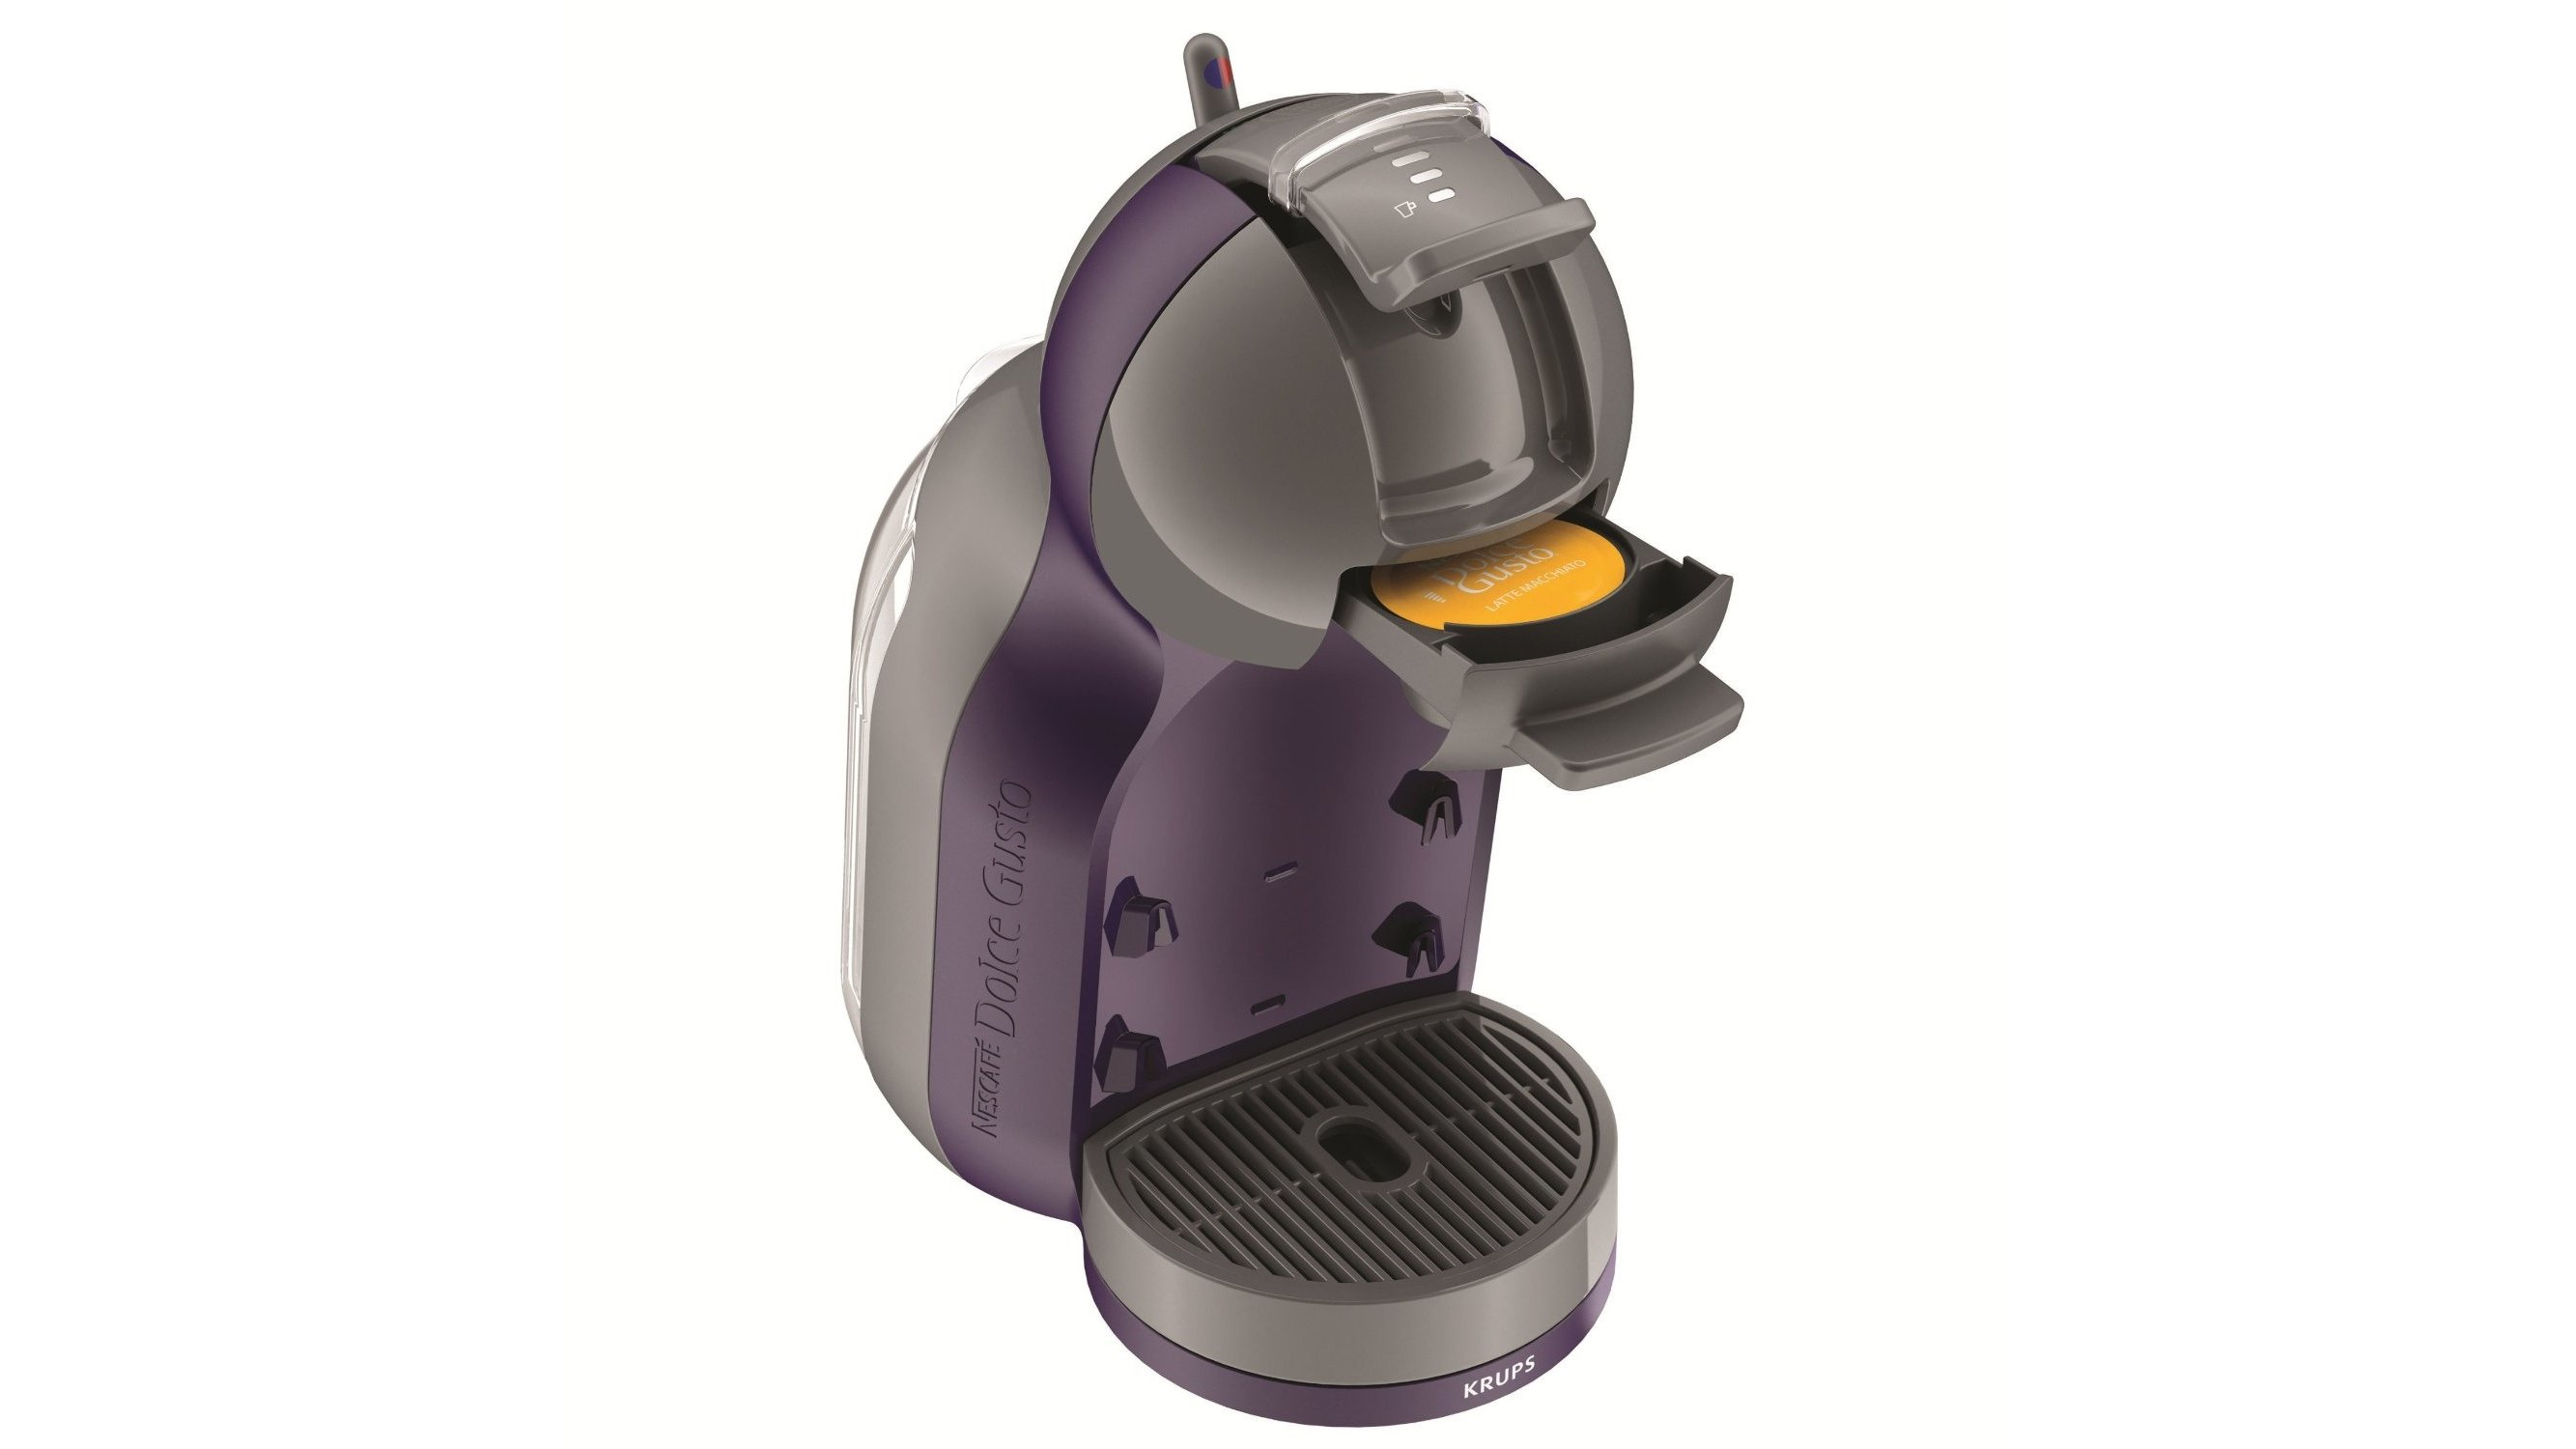 Krups Coffee Maker Asda : Krups Dolce Gusto Mini Me review Expert Reviews